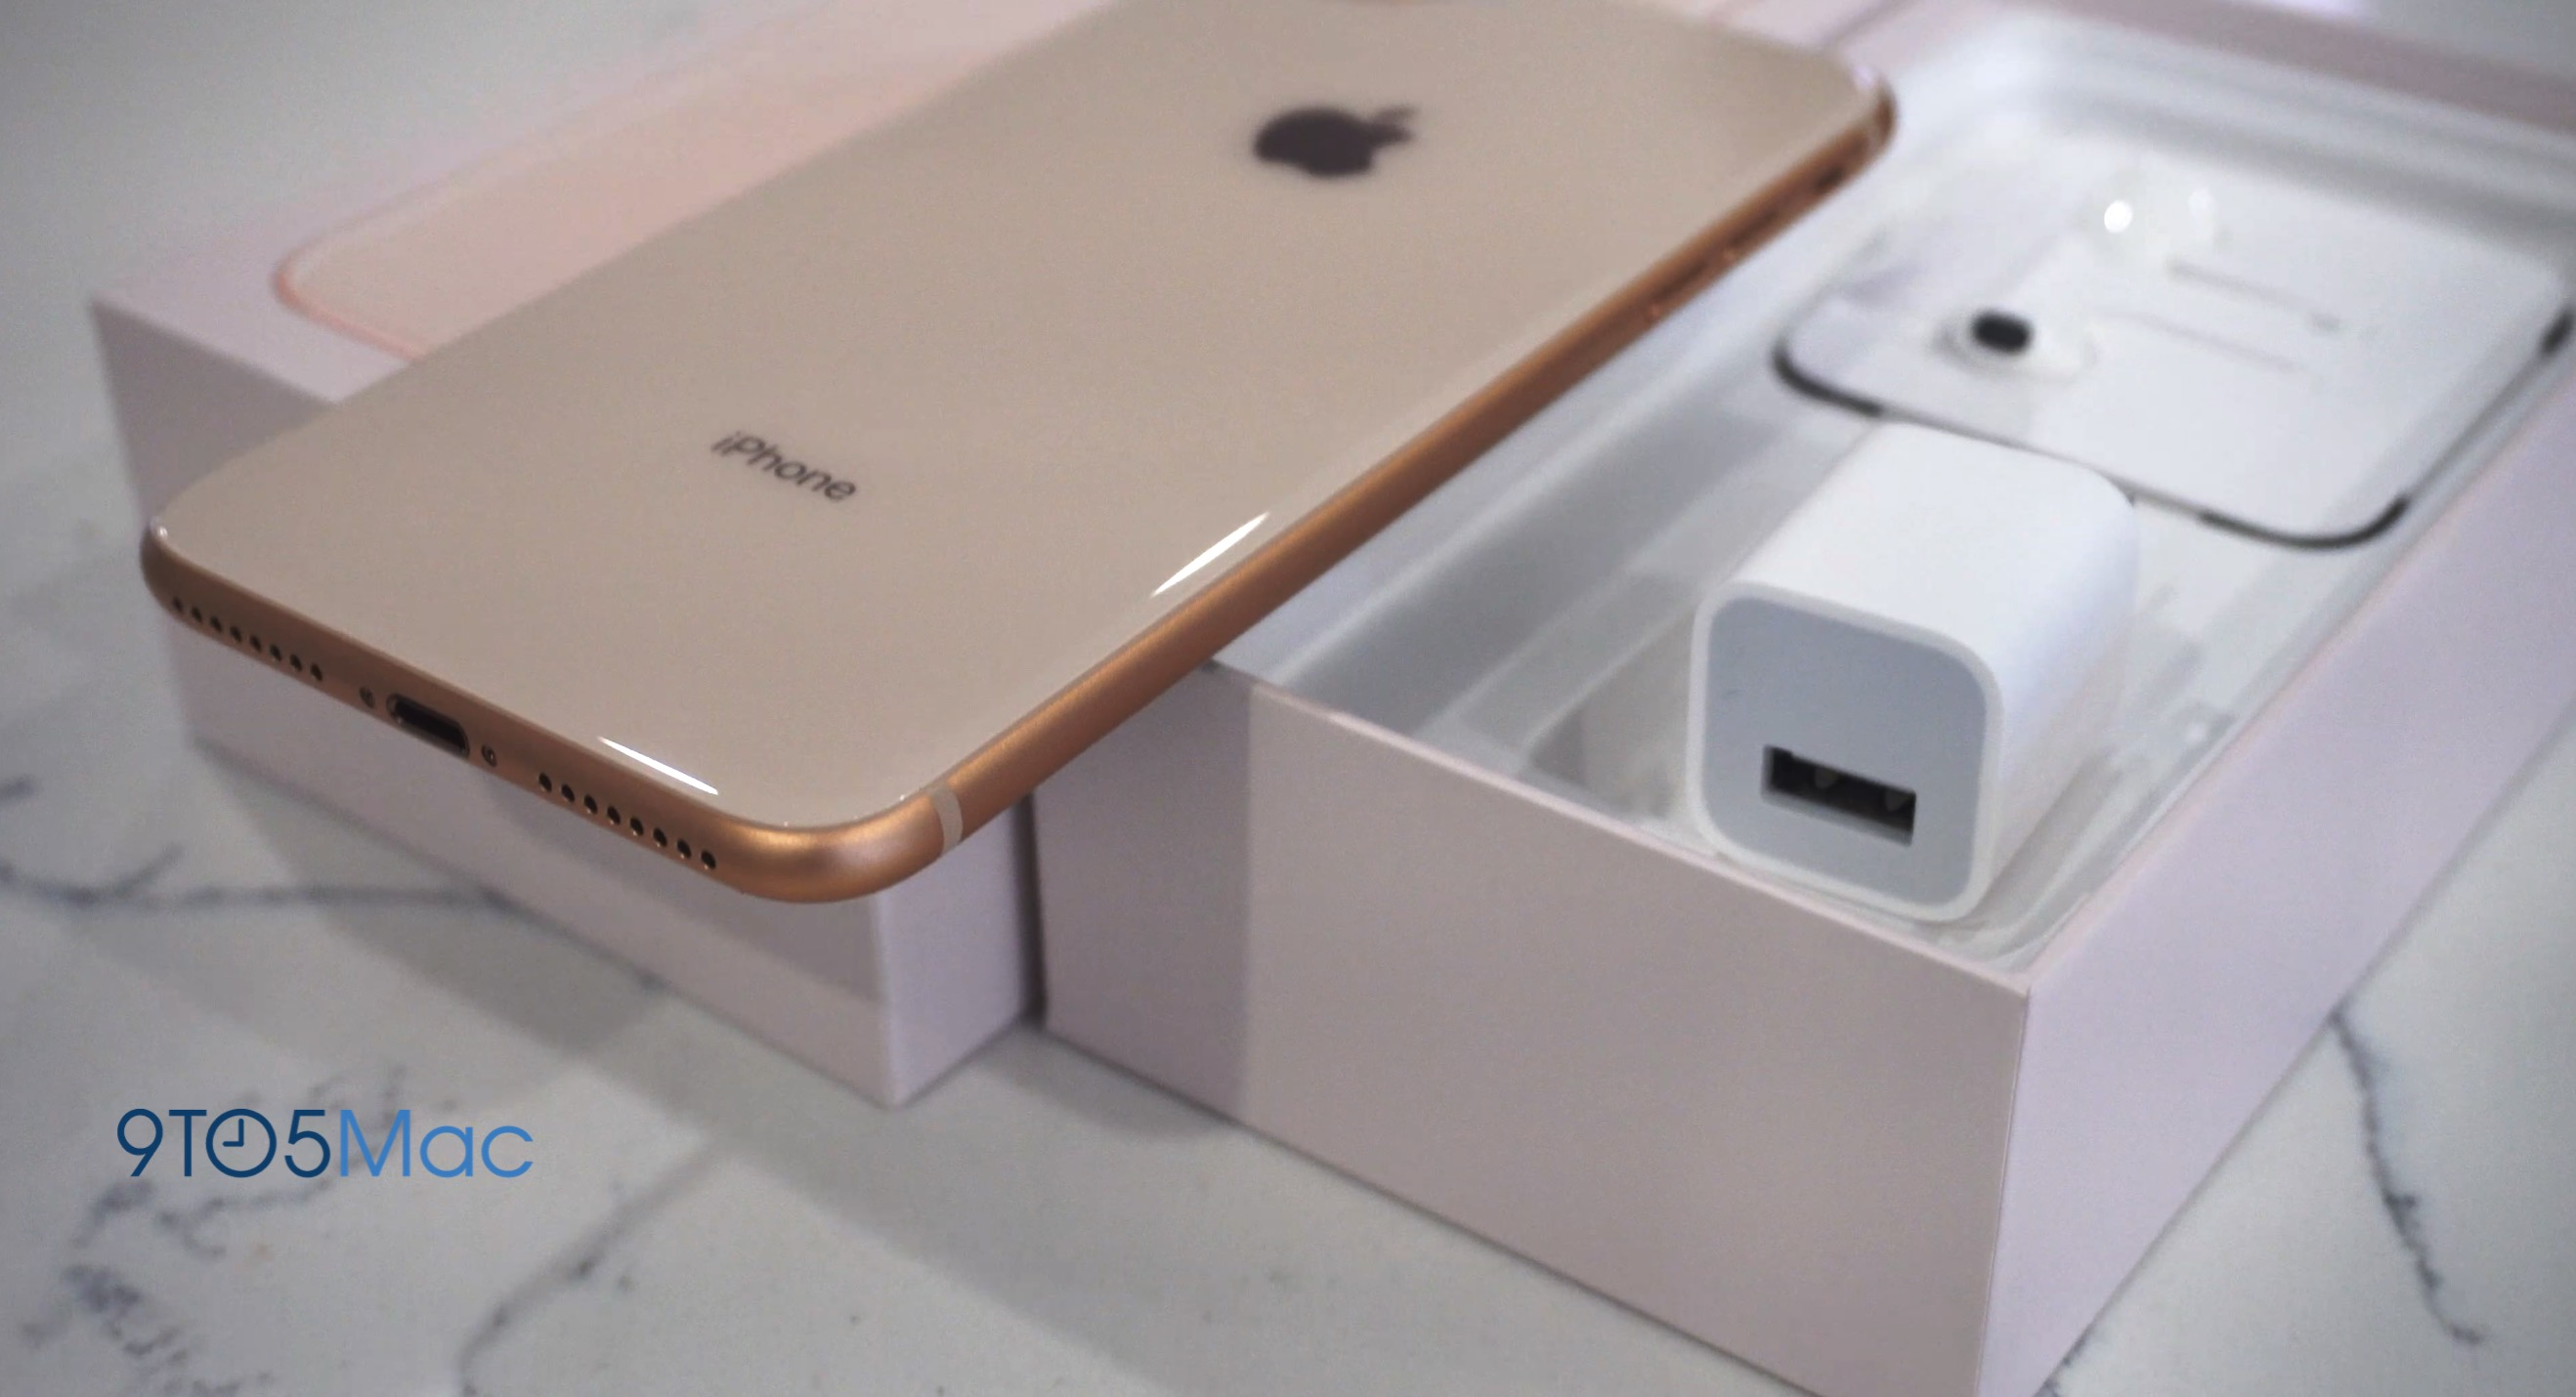 iPhone-8-plus-review-9to5mac-gold